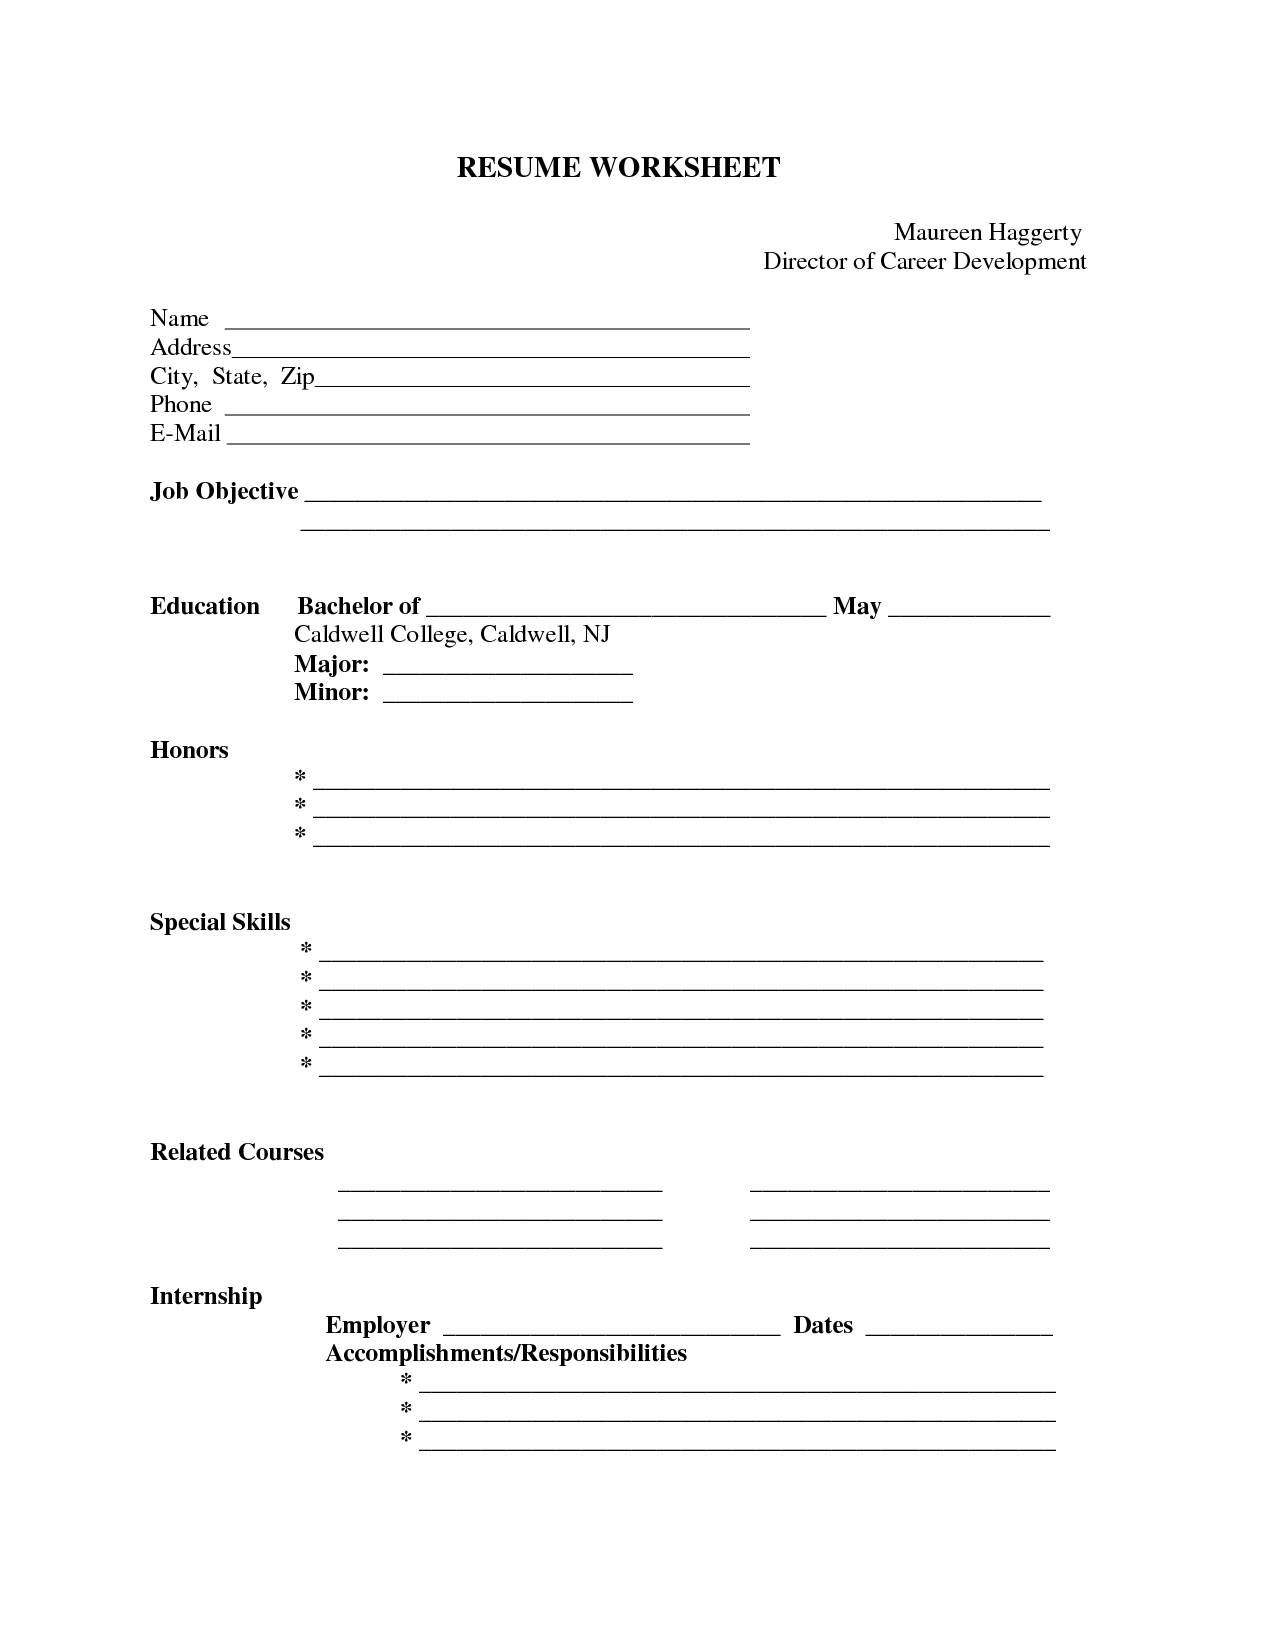 Blank Resume Template Pdf Free Printable Blank Resume Forms  Httpwwwresumecareer